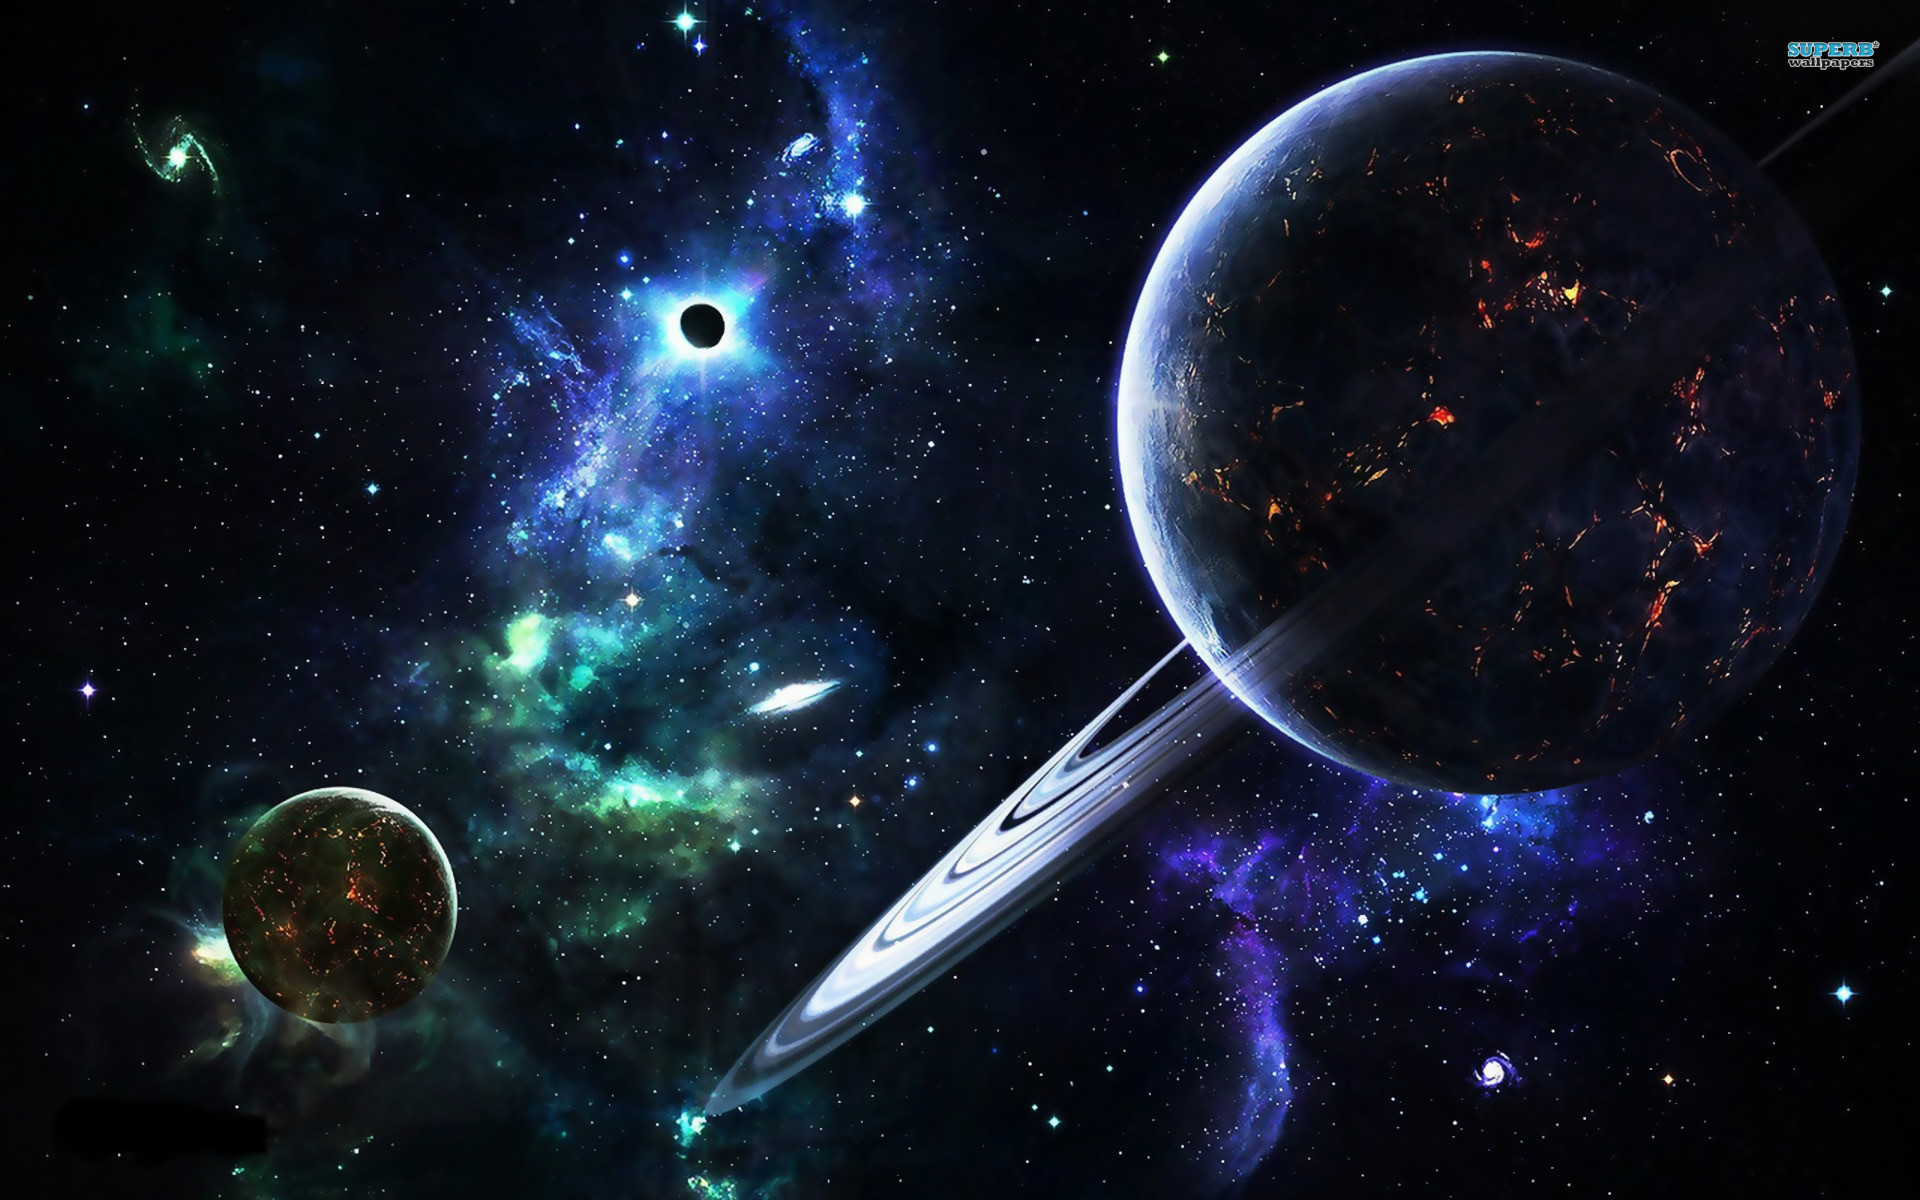 HD Wallpaper and background photos of Space Art Wallpaper for fans of Space  images.